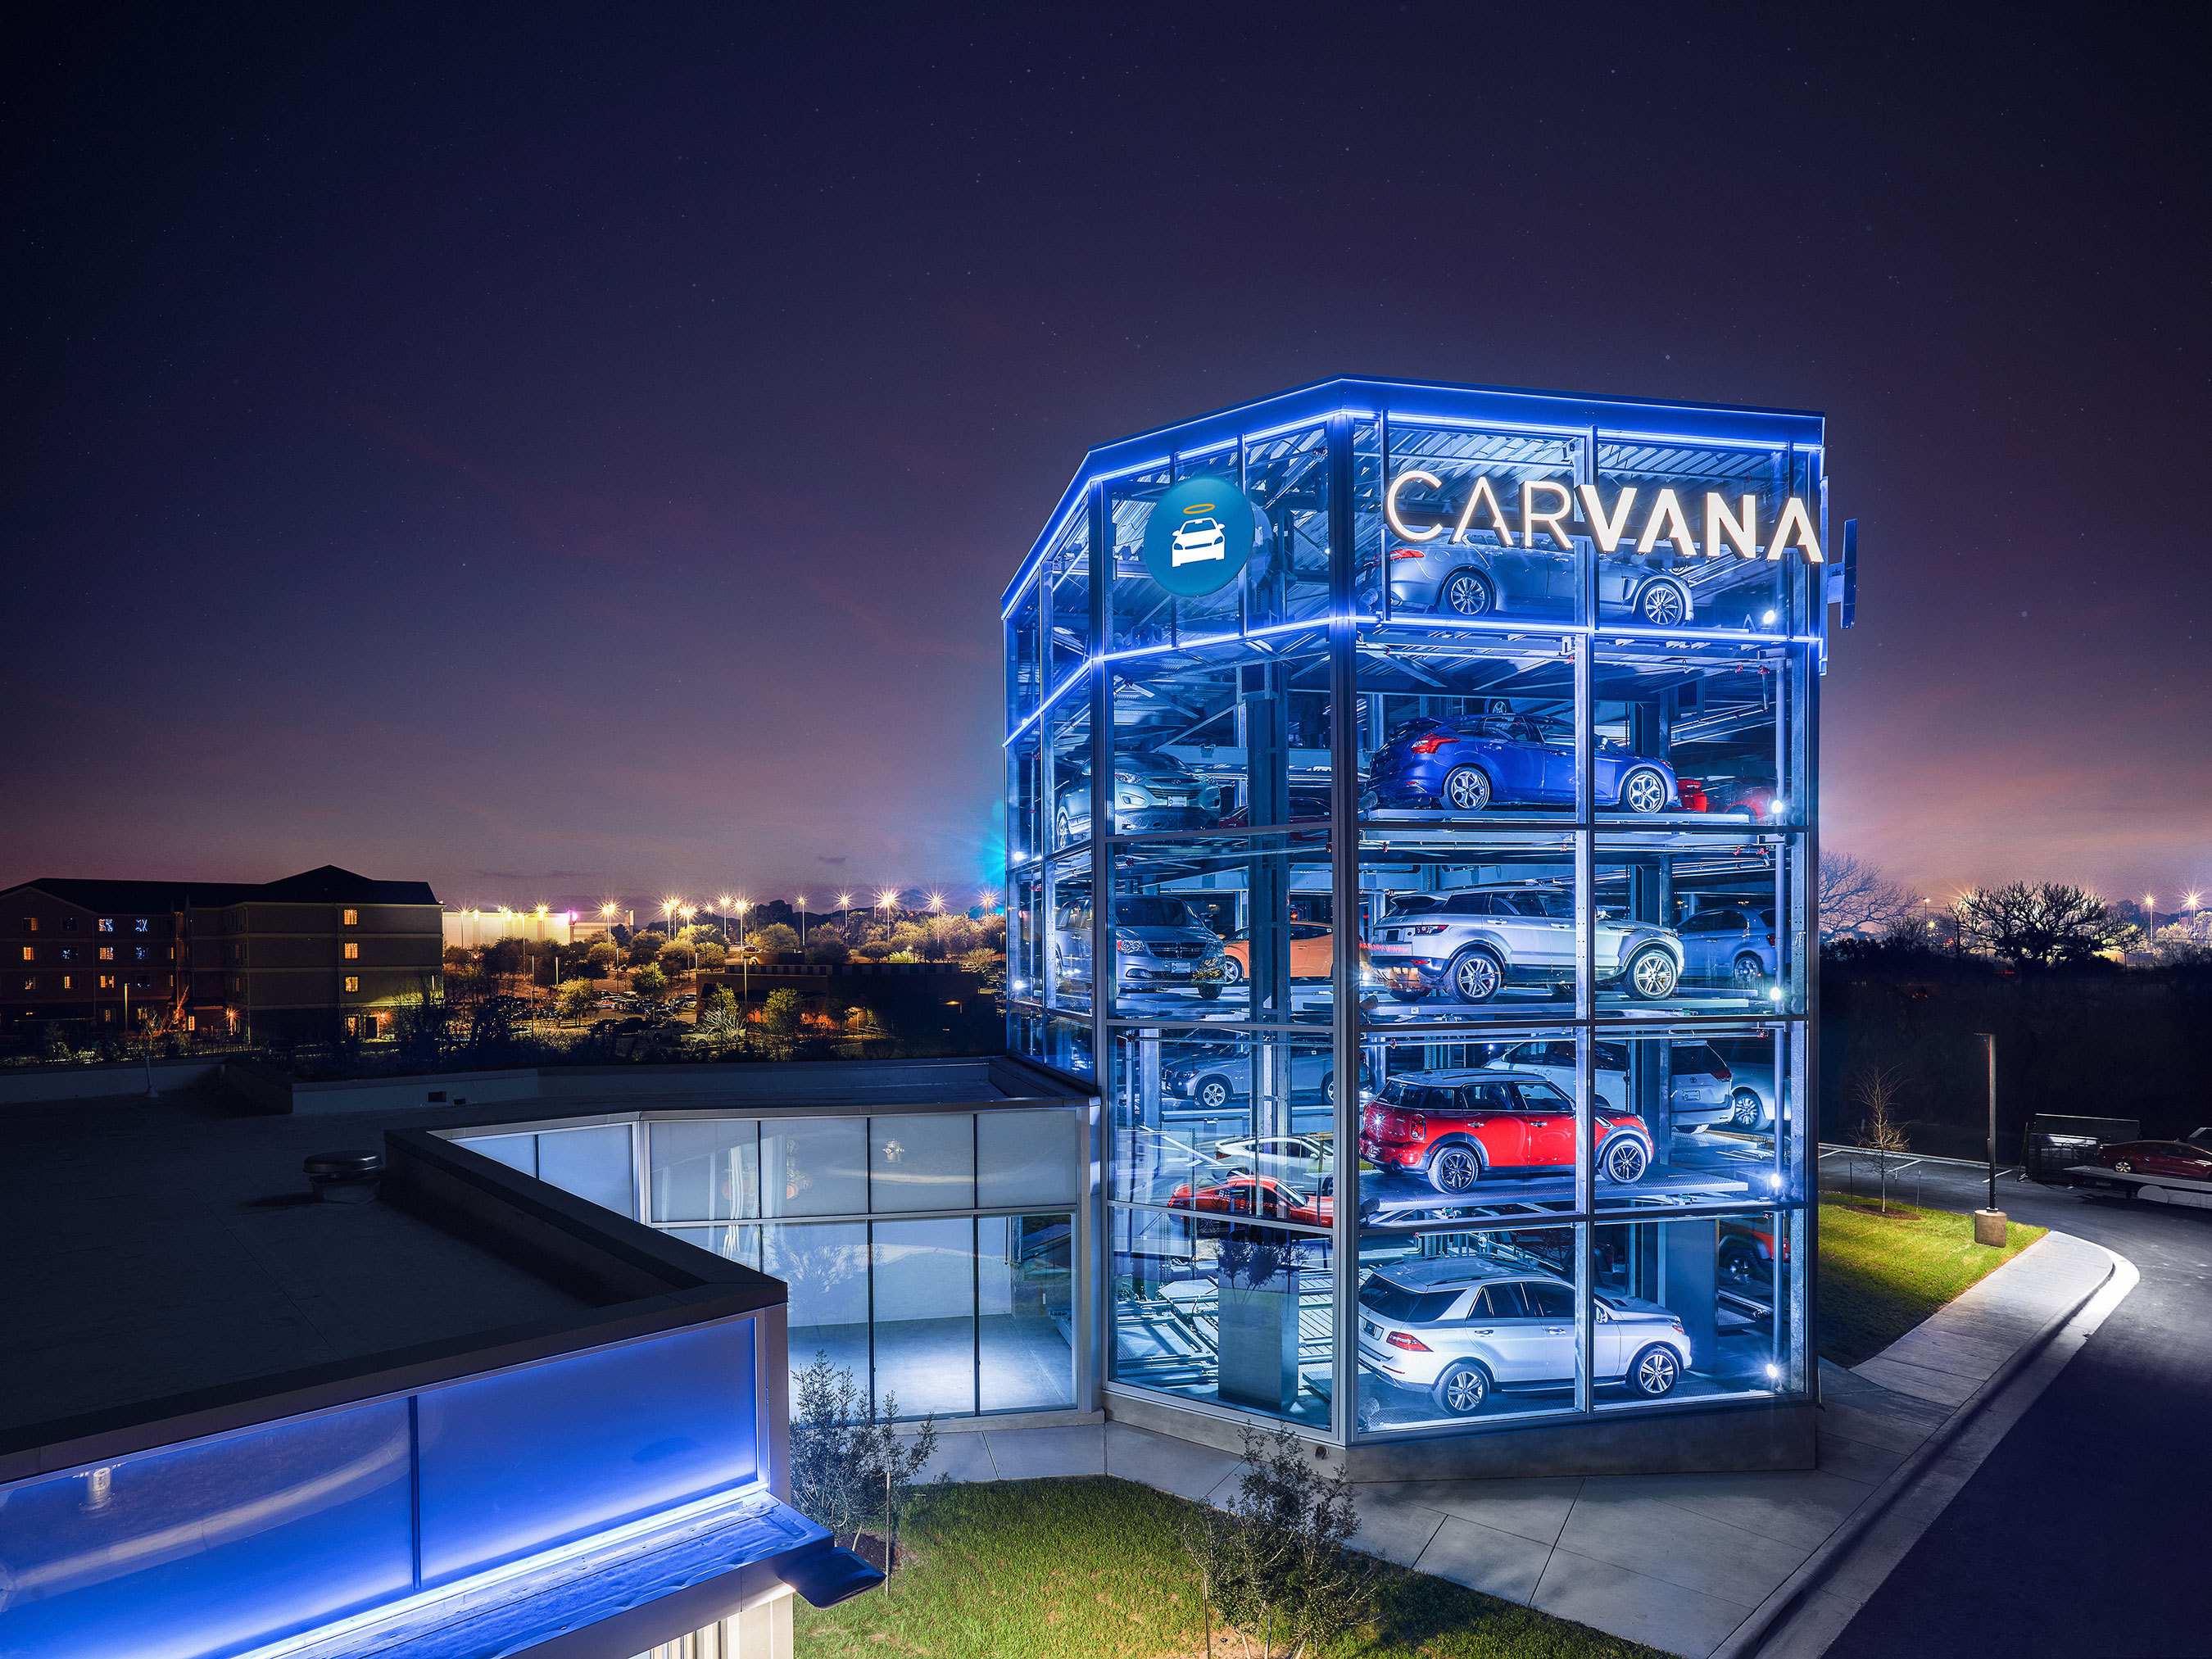 Carvana Kicks Off 2017 by Launching Coin-Operated Car Vending Machine in Austin, Texas (Photo: Business Wire)